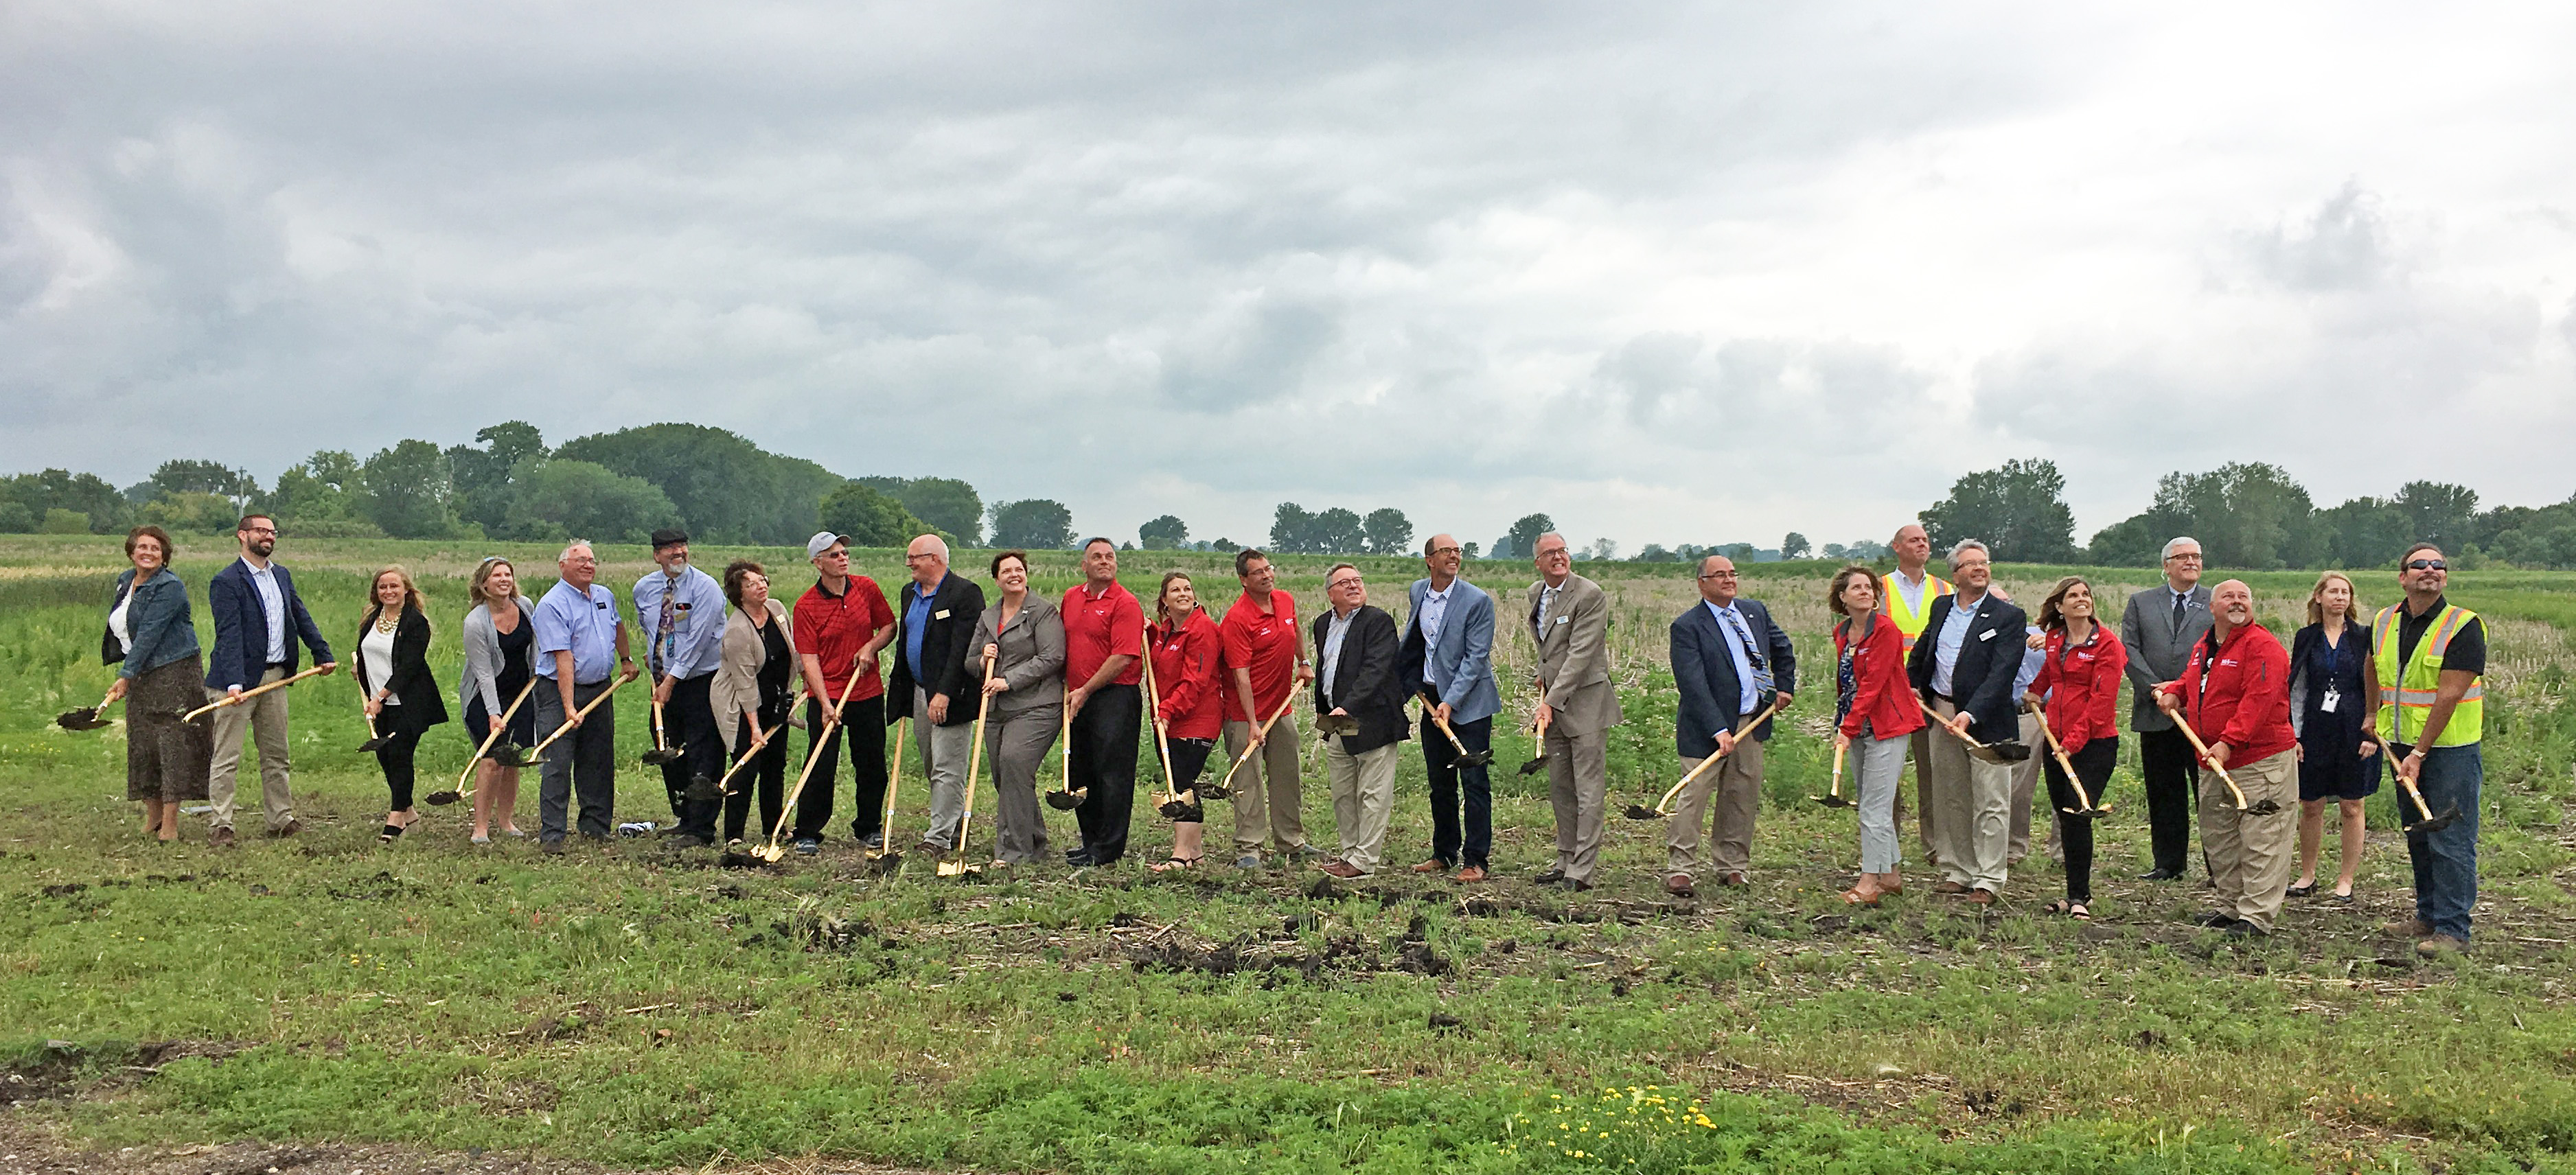 Willmar Wye groundbreaking with shovels